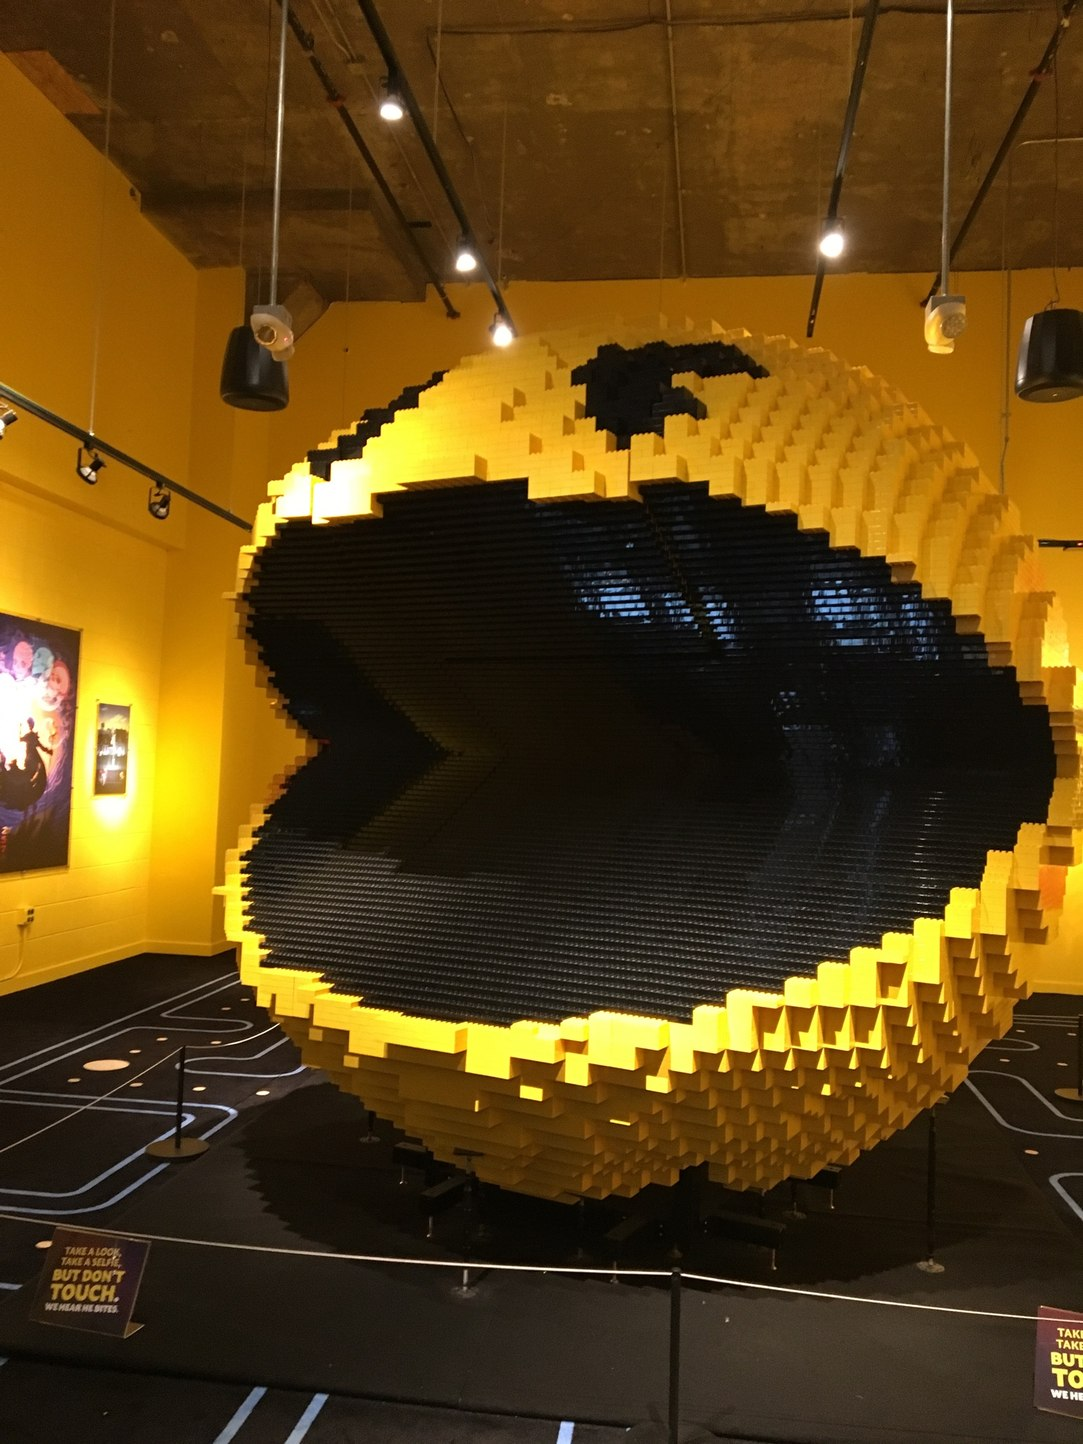 This is the worlds largest Pac-Man made of legos it took 8 days to build. Still think you have no life? - meme